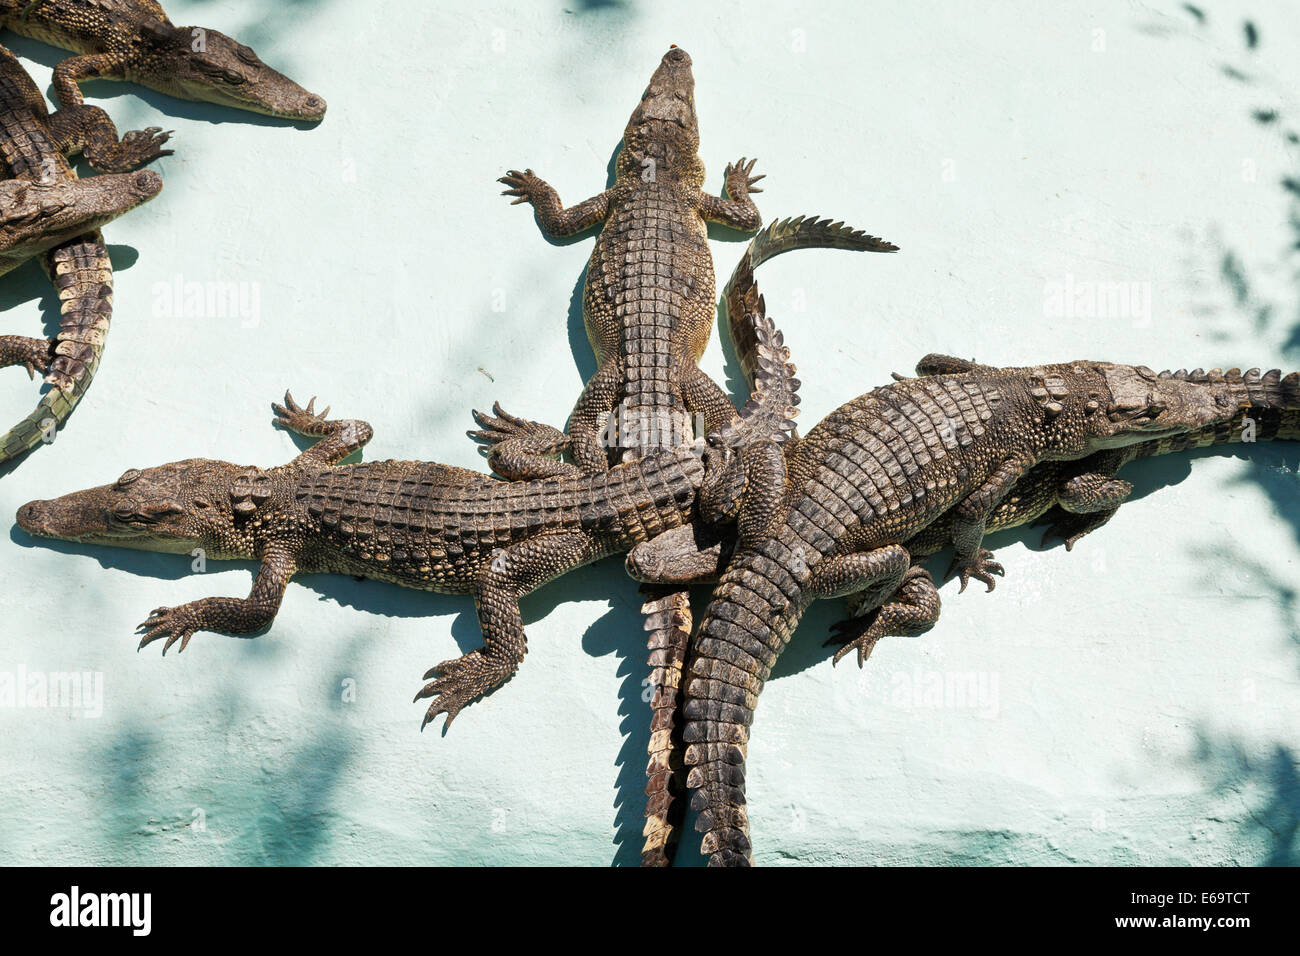 few young crocodiles on Crocodile Farm outdoors Stock Photo